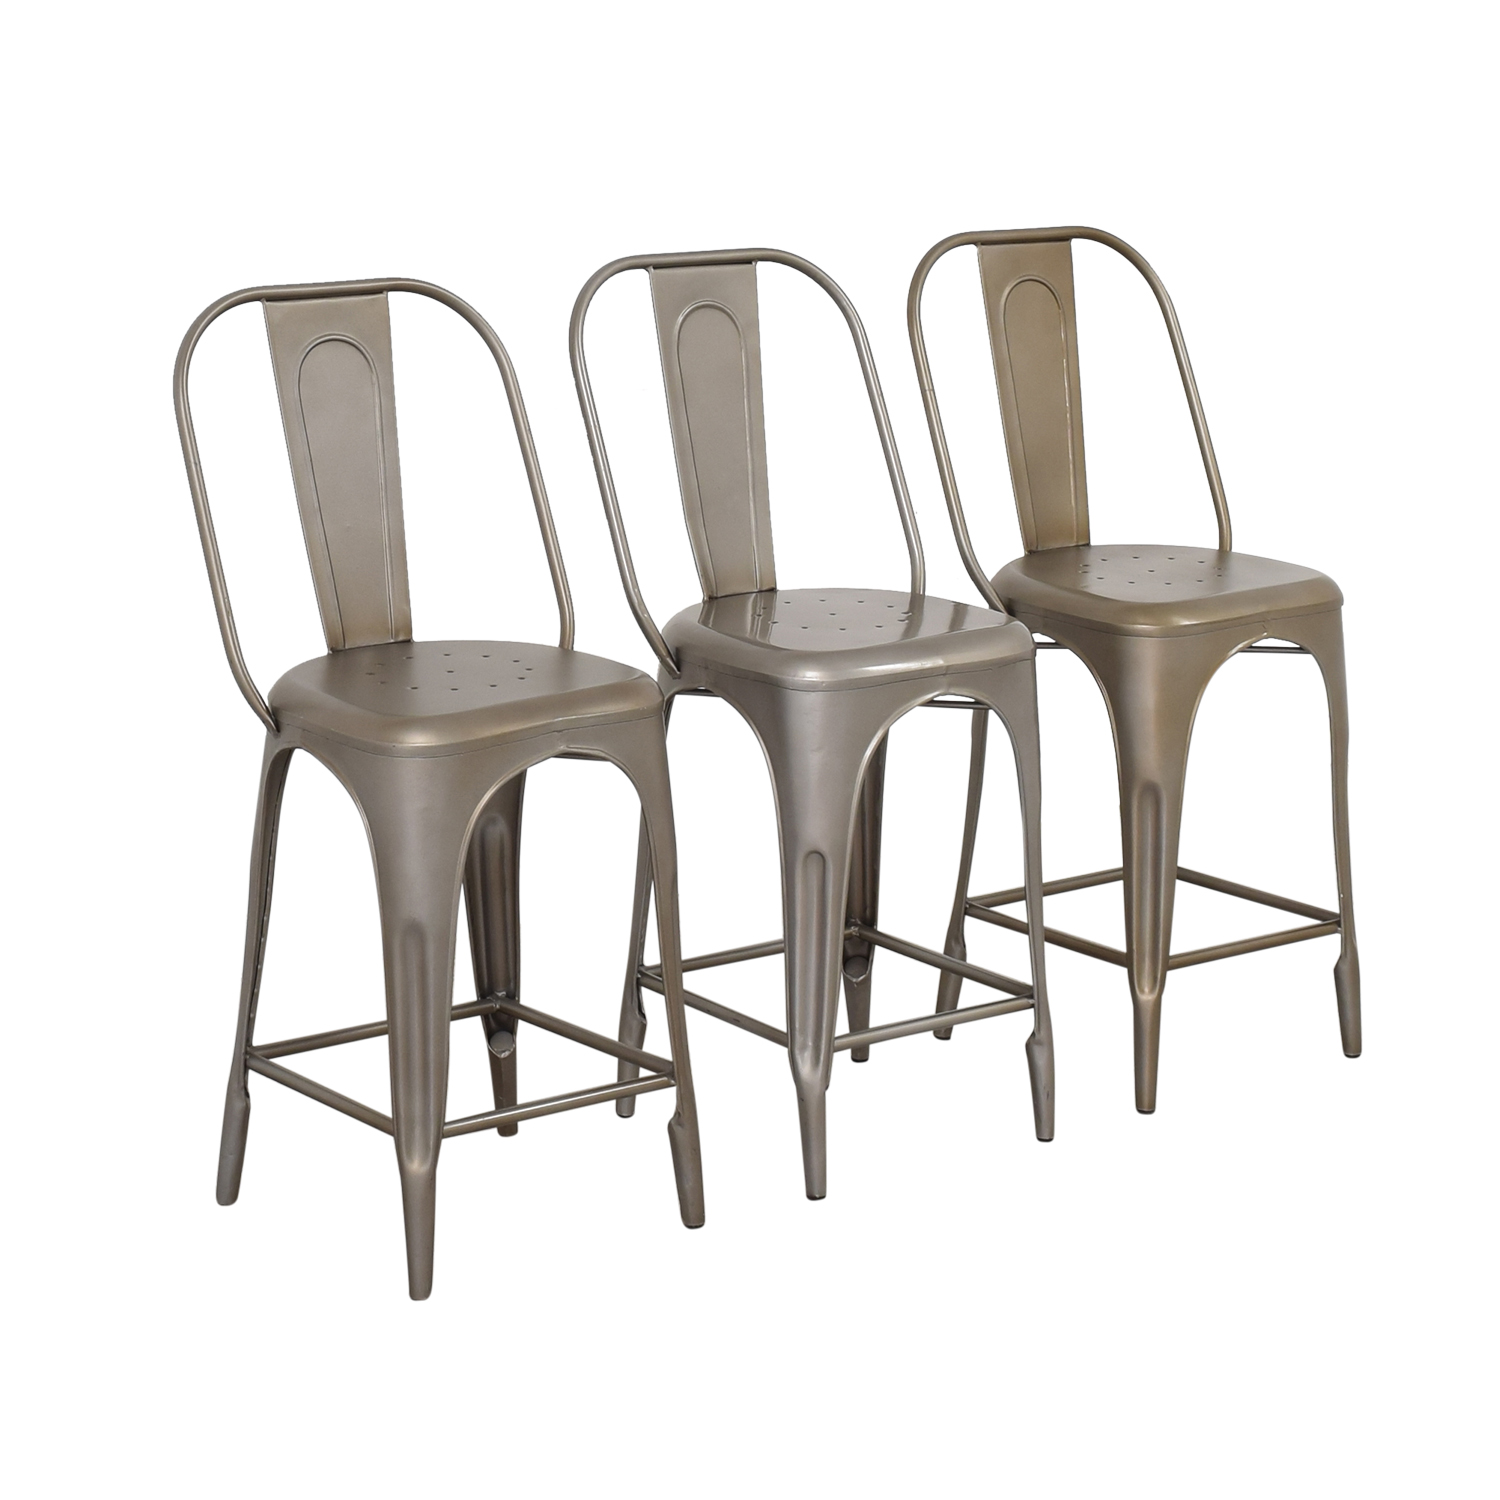 Restoration Hardware Restoration Hardware Remy Counter Stools Chairs